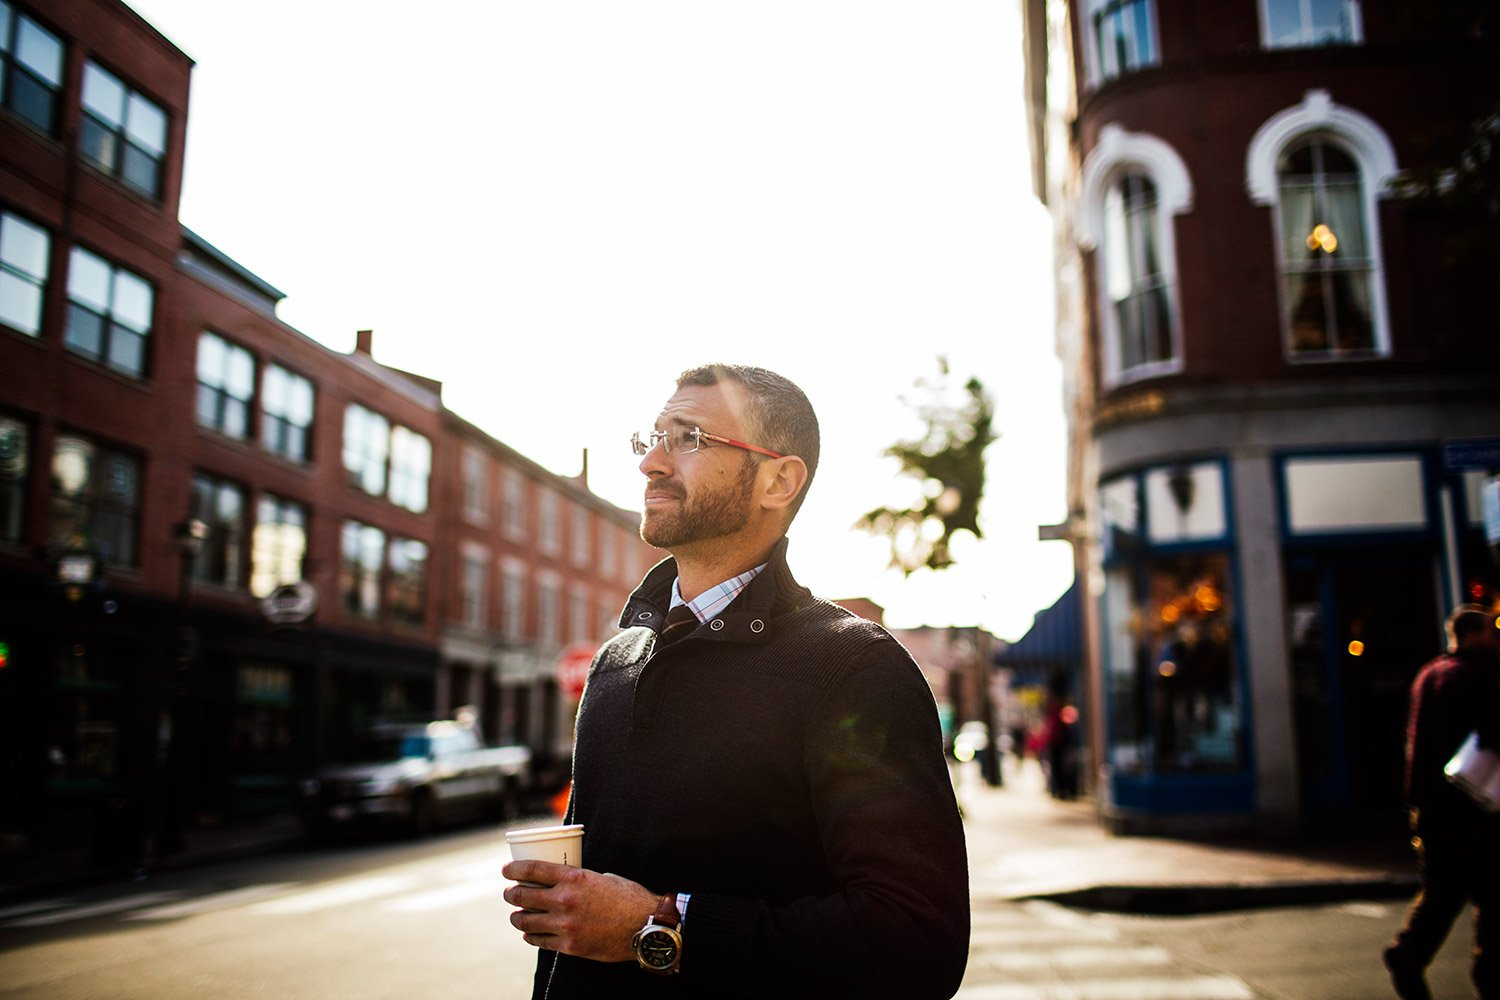 Jeff Packard is one of many employers who have been helped by Portland's appeal as a livable city.